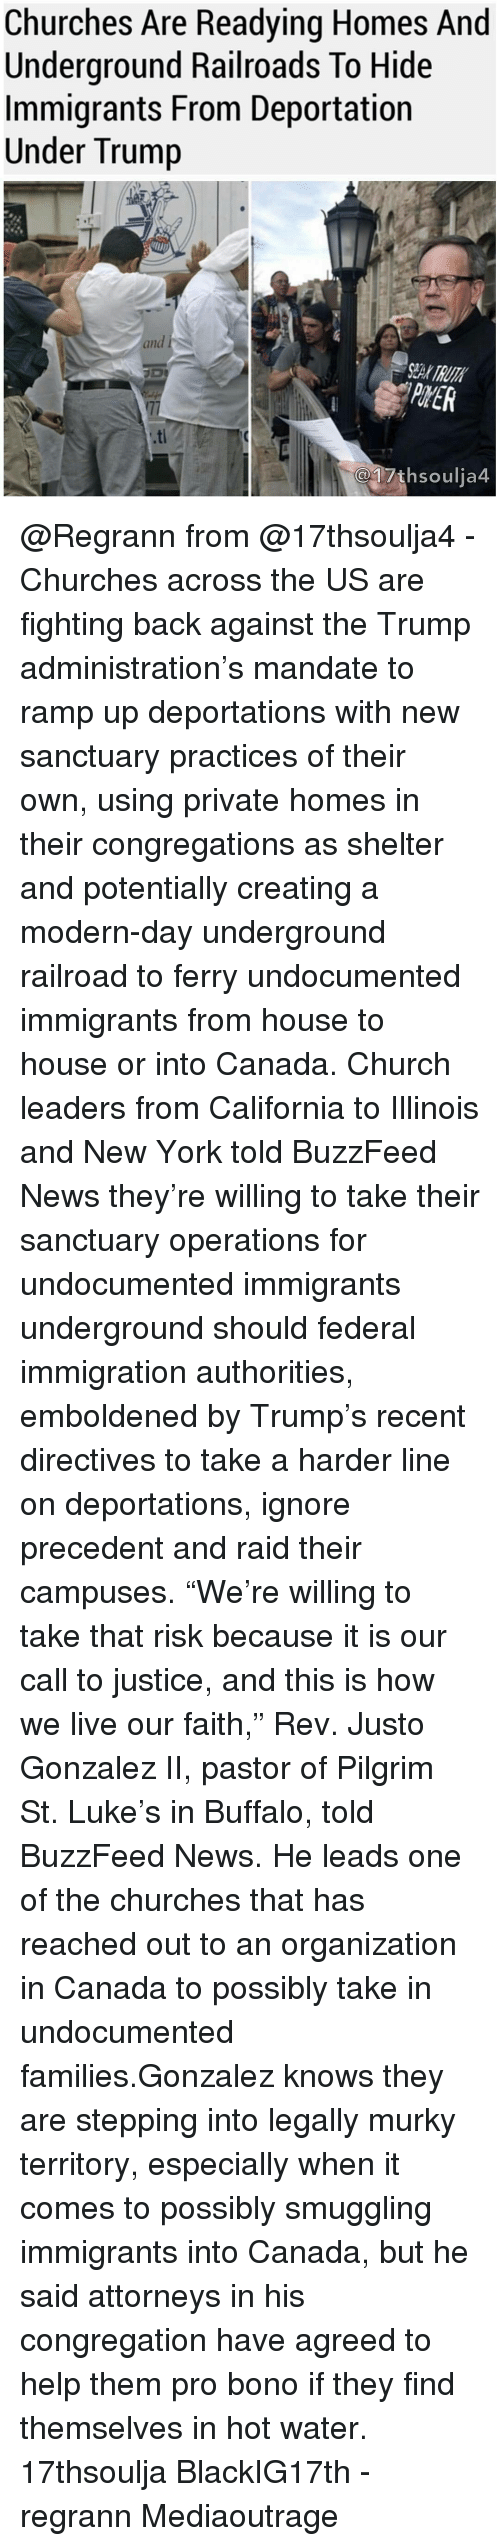 "Buzzfees: Churches Are Readying Homes And  Underground Railroads To Hide  Immigrants From Deportation  Under Trump  and  C17thsoulja4 @Regrann from @17thsoulja4 - Churches across the US are fighting back against the Trump administration's mandate to ramp up deportations with new sanctuary practices of their own, using private homes in their congregations as shelter and potentially creating a modern-day underground railroad to ferry undocumented immigrants from house to house or into Canada. Church leaders from California to Illinois and New York told BuzzFeed News they're willing to take their sanctuary operations for undocumented immigrants underground should federal immigration authorities, emboldened by Trump's recent directives to take a harder line on deportations, ignore precedent and raid their campuses. ""We're willing to take that risk because it is our call to justice, and this is how we live our faith,"" Rev. Justo Gonzalez II, pastor of Pilgrim St. Luke's in Buffalo, told BuzzFeed News. He leads one of the churches that has reached out to an organization in Canada to possibly take in undocumented families.Gonzalez knows they are stepping into legally murky territory, especially when it comes to possibly smuggling immigrants into Canada, but he said attorneys in his congregation have agreed to help them pro bono if they find themselves in hot water. 17thsoulja BlackIG17th - regrann Mediaoutrage"